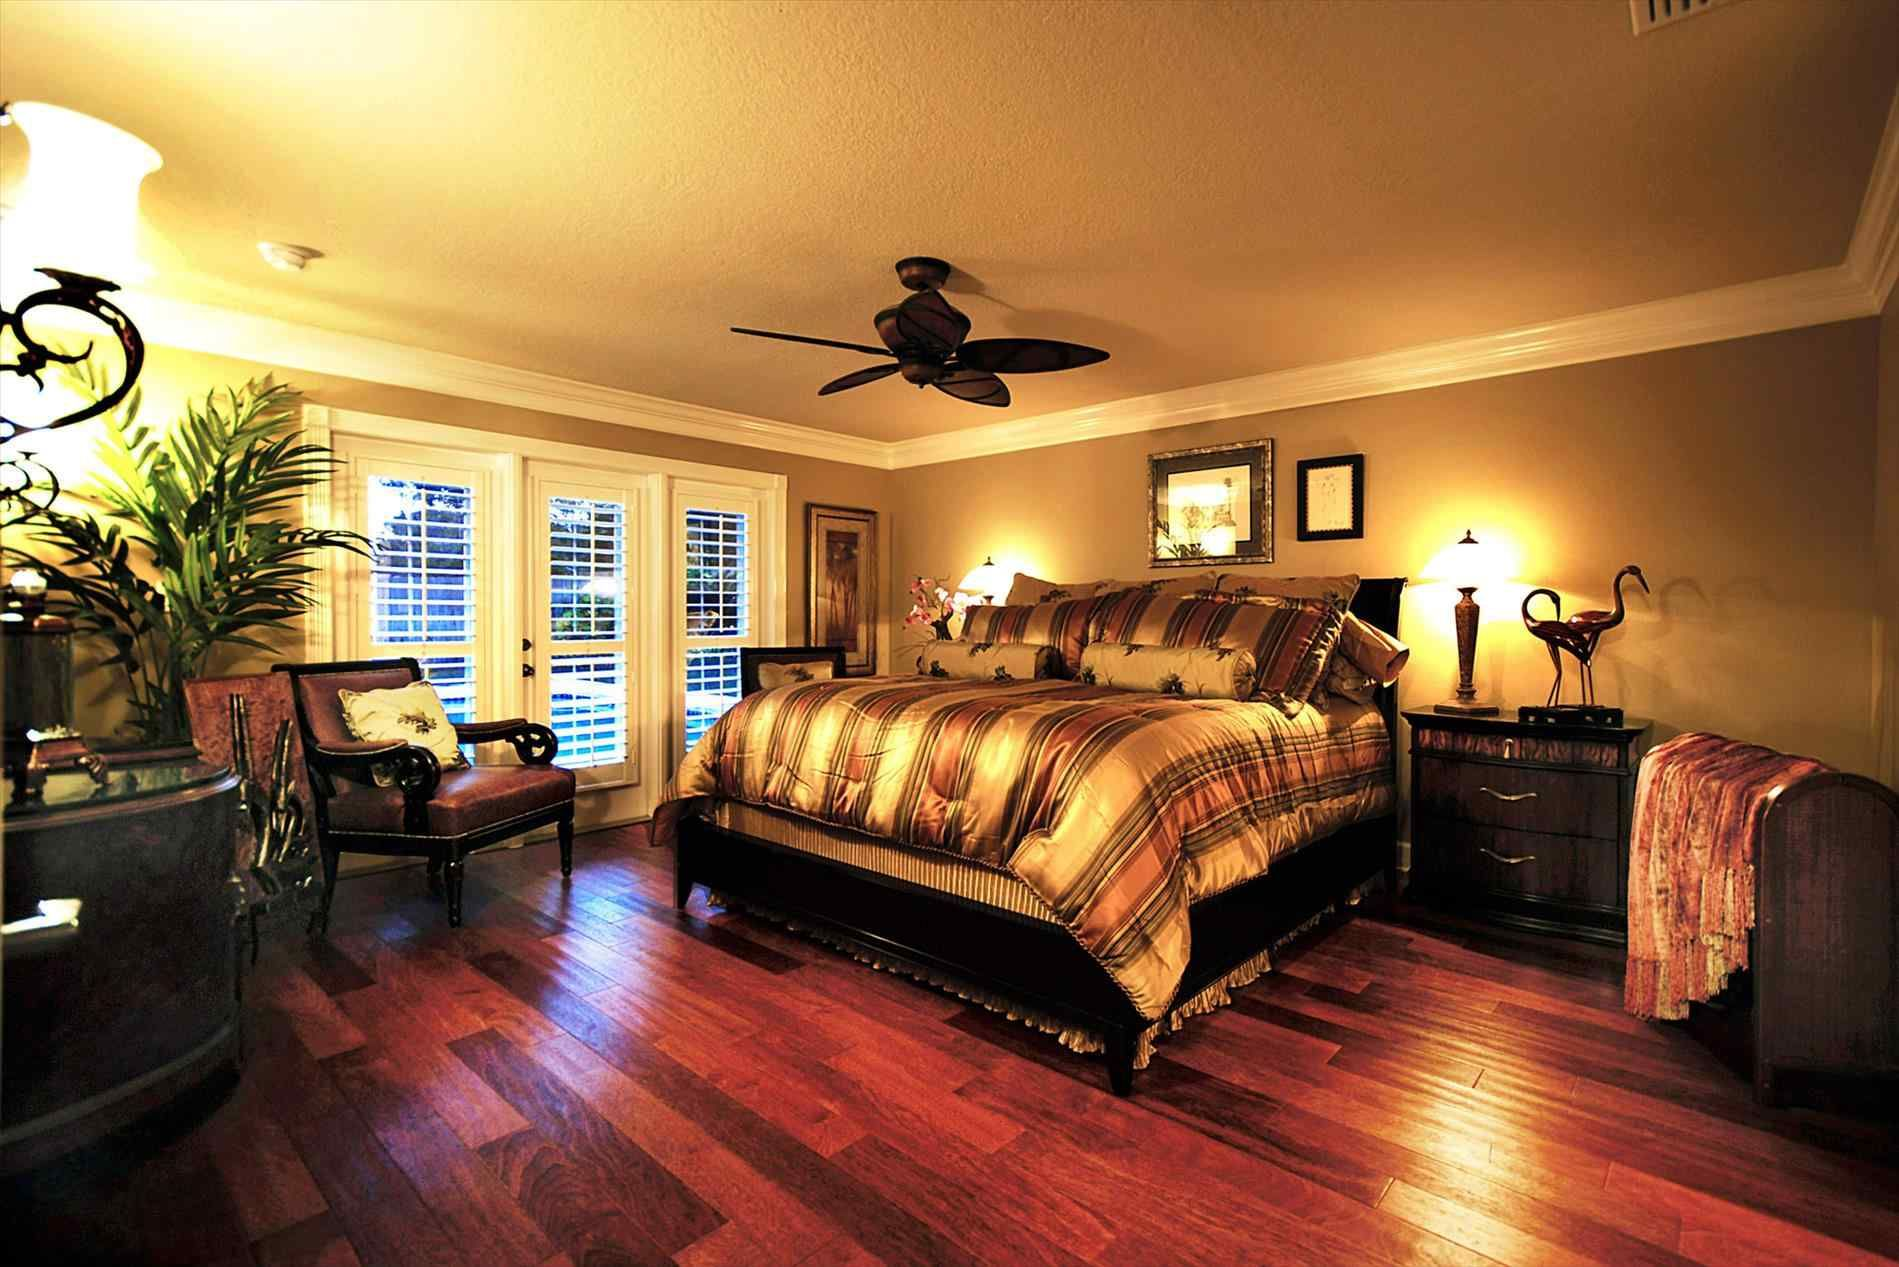 Bedroom Suite Designs Pinsherry Jwilliams On Luxury Master Bedroom Suite Designs